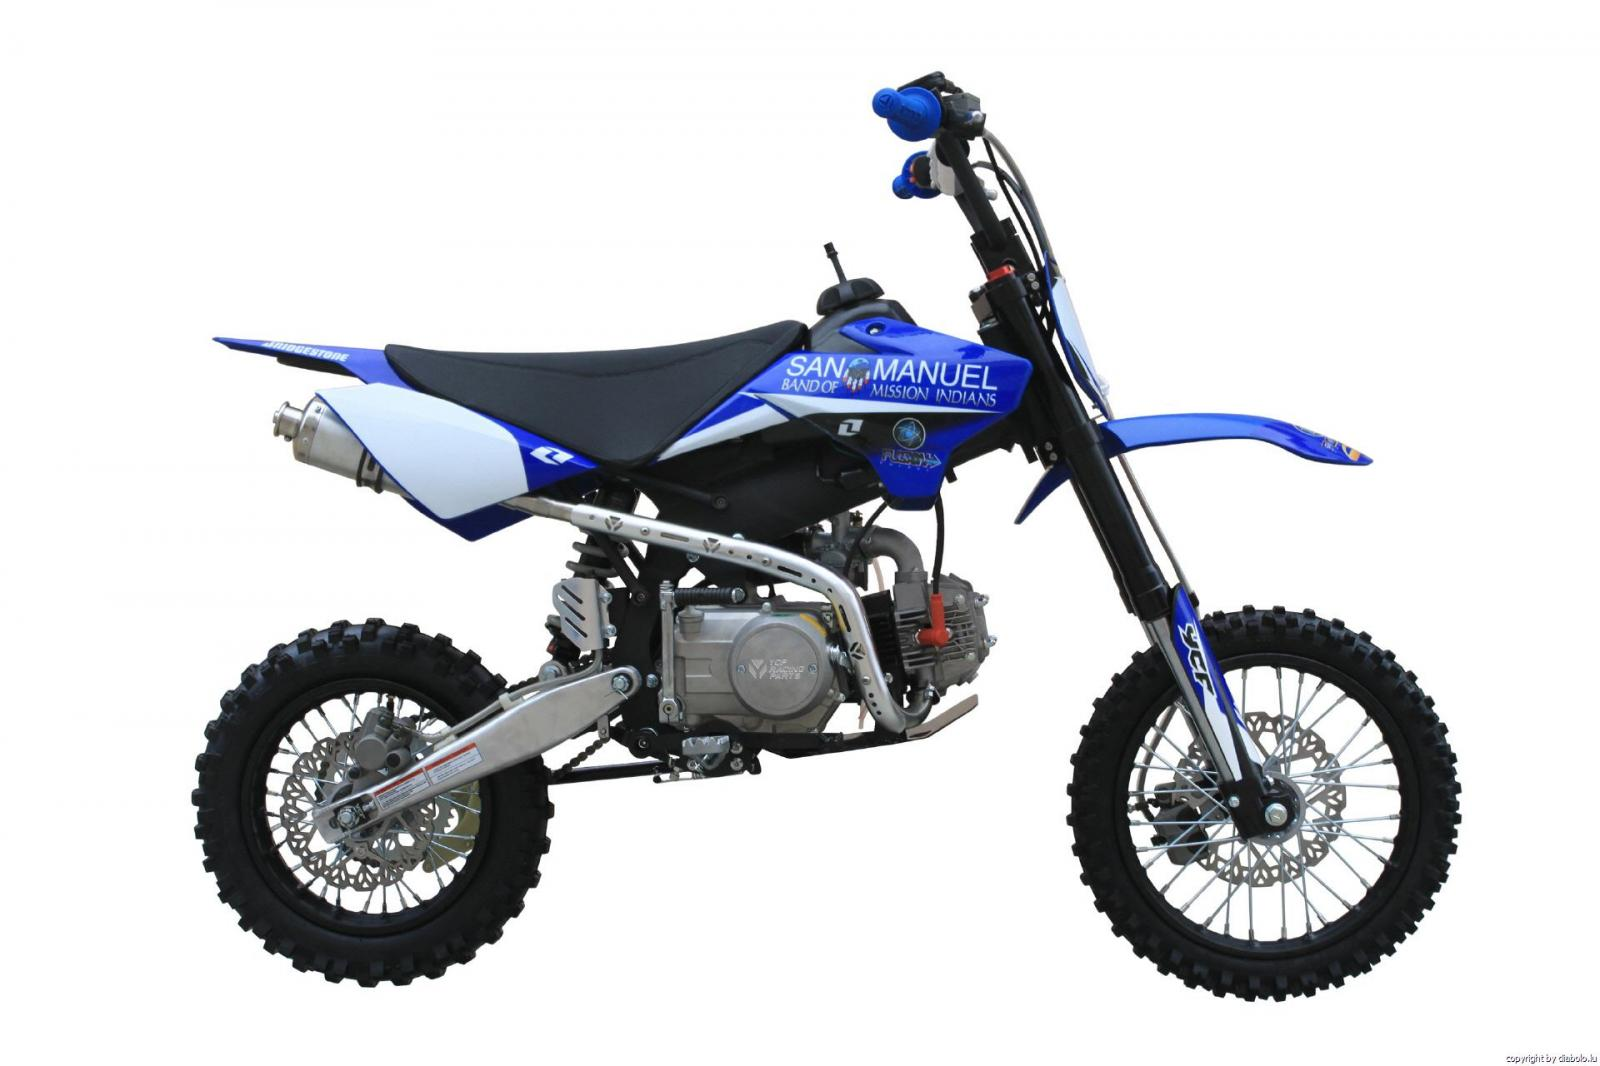 2005 polini mini supermotard moto zombdrive com for Yamaha mini dirt bikes